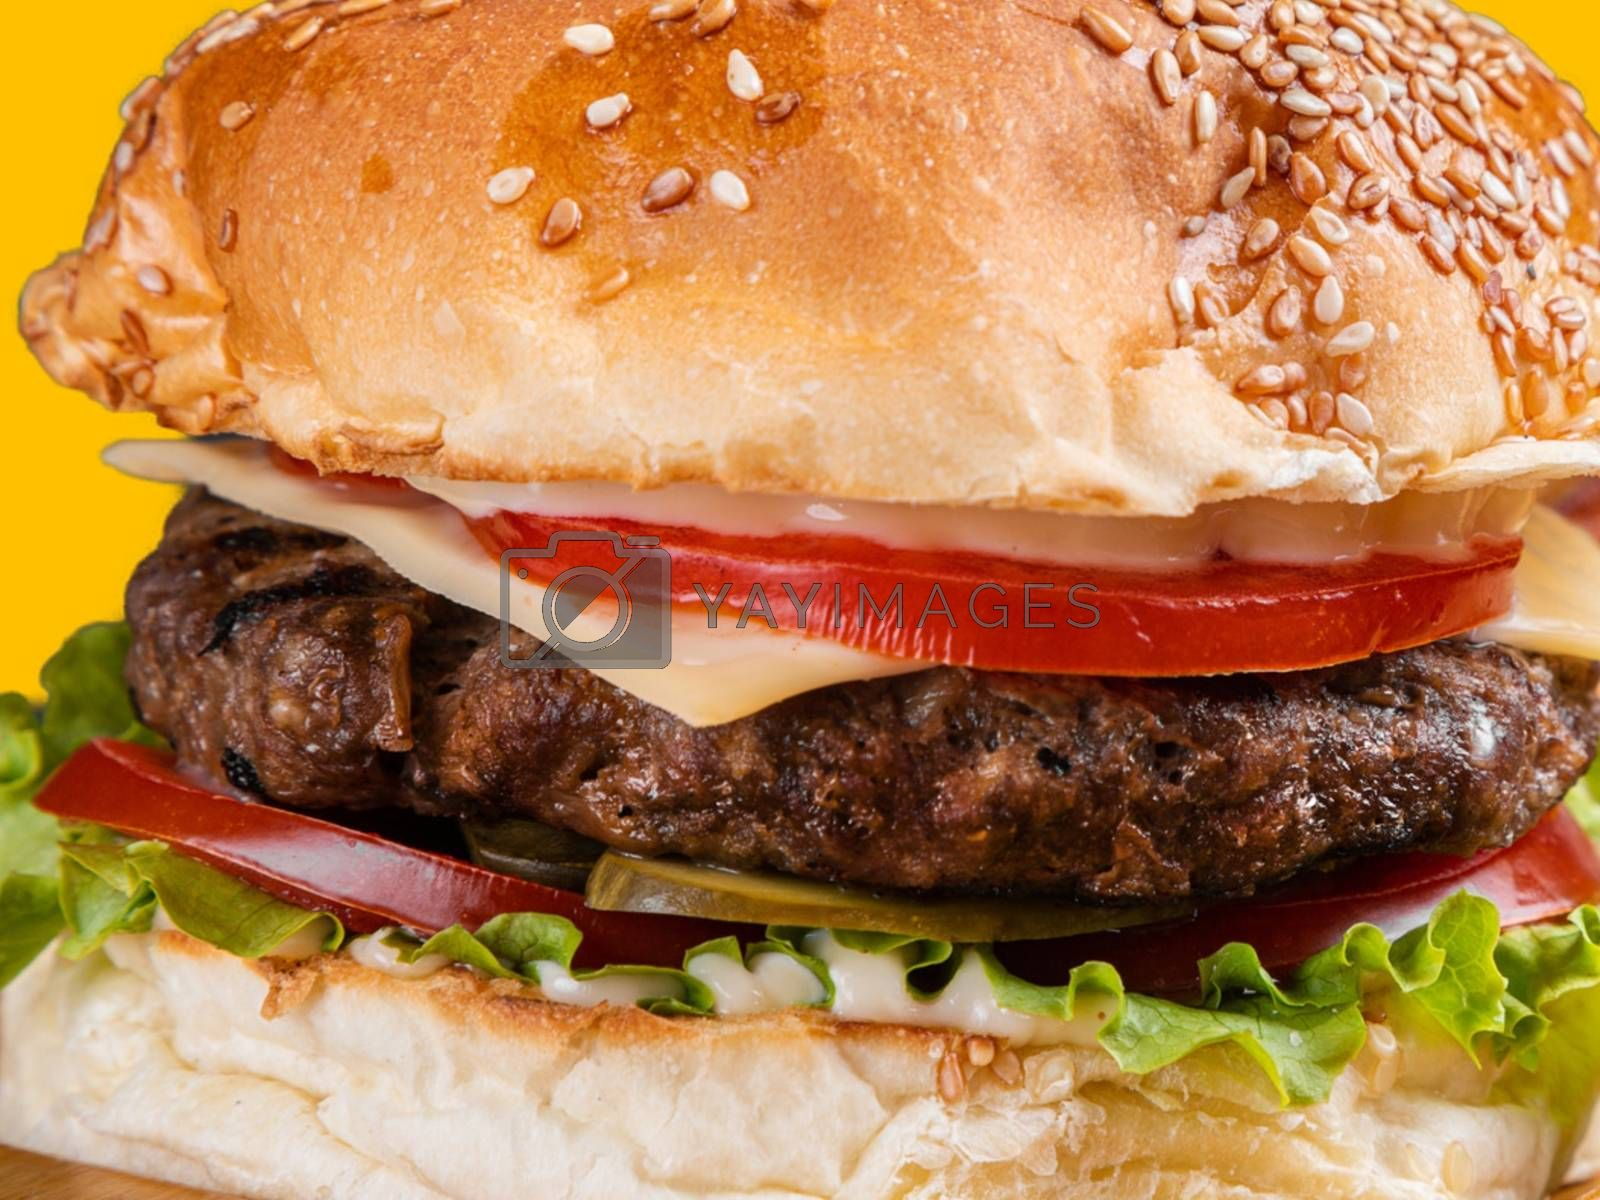 Royalty free image of A close up of a delicious hamburger with beef, cheese, and vegetables by balage941